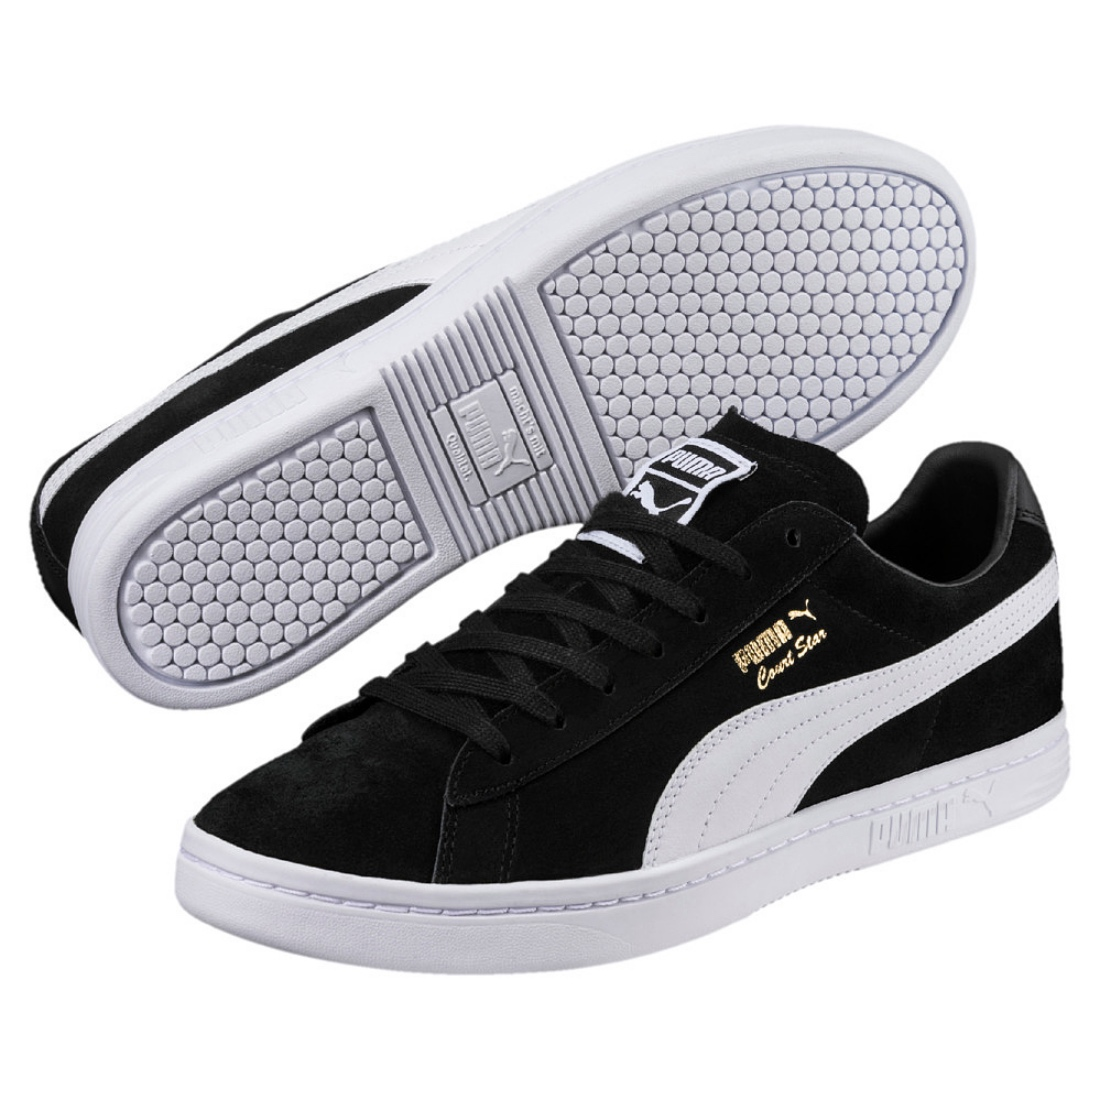 Unisex Puma Chaussures de basket Puma Court Star Animal